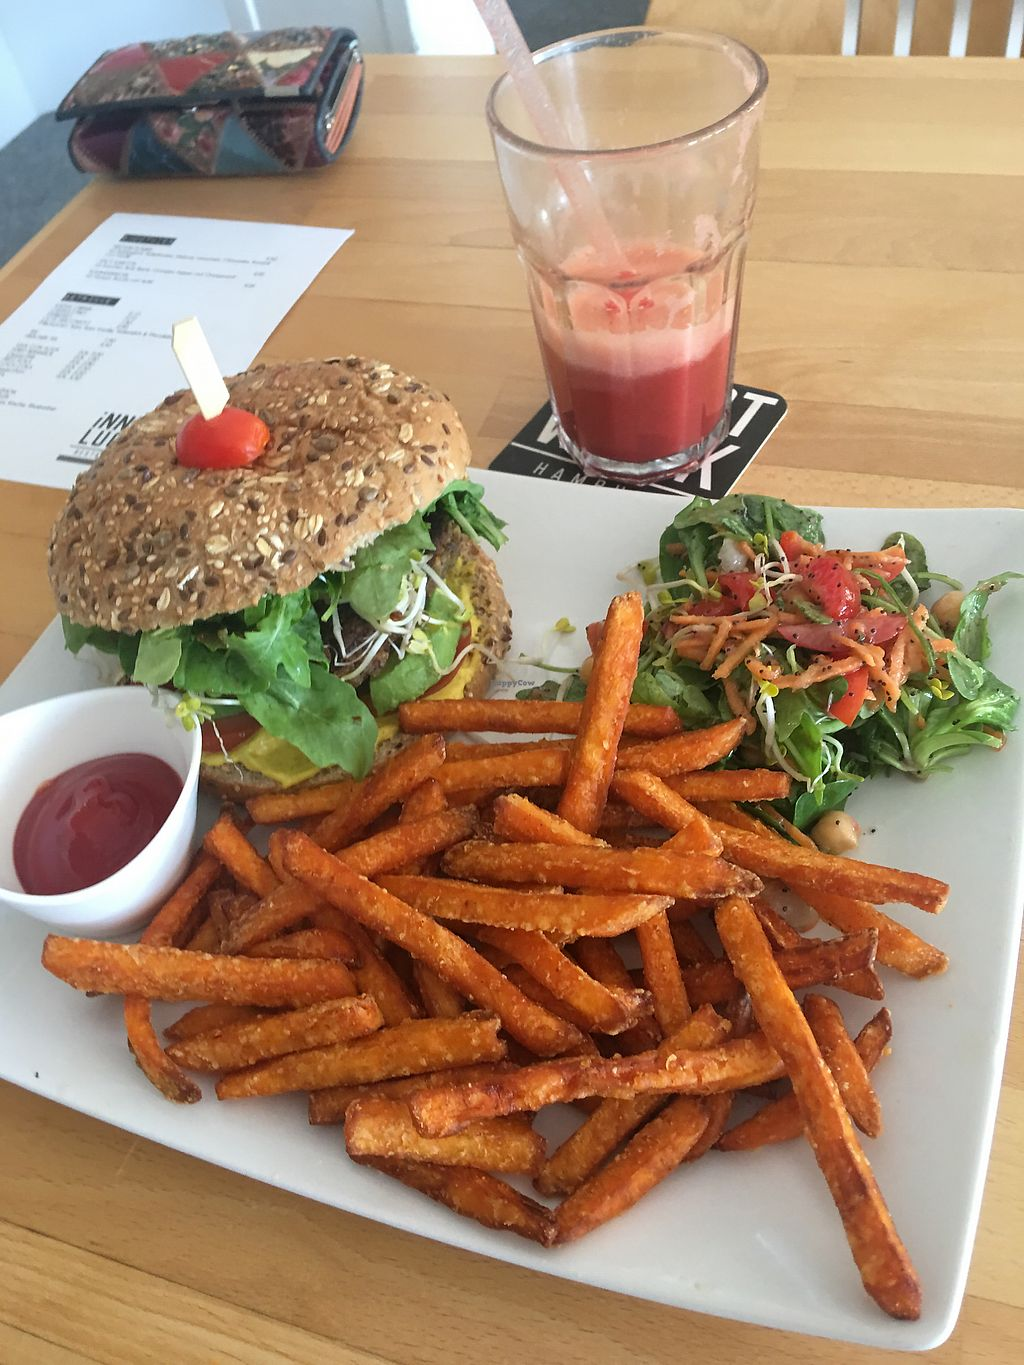 """Photo of innerluck  by <a href=""""/members/profile/edajoir"""">edajoir</a> <br/>Veggie burger with Avocado and sweet potato fries  <br/> September 16, 2017  - <a href='/contact/abuse/image/93866/304992'>Report</a>"""